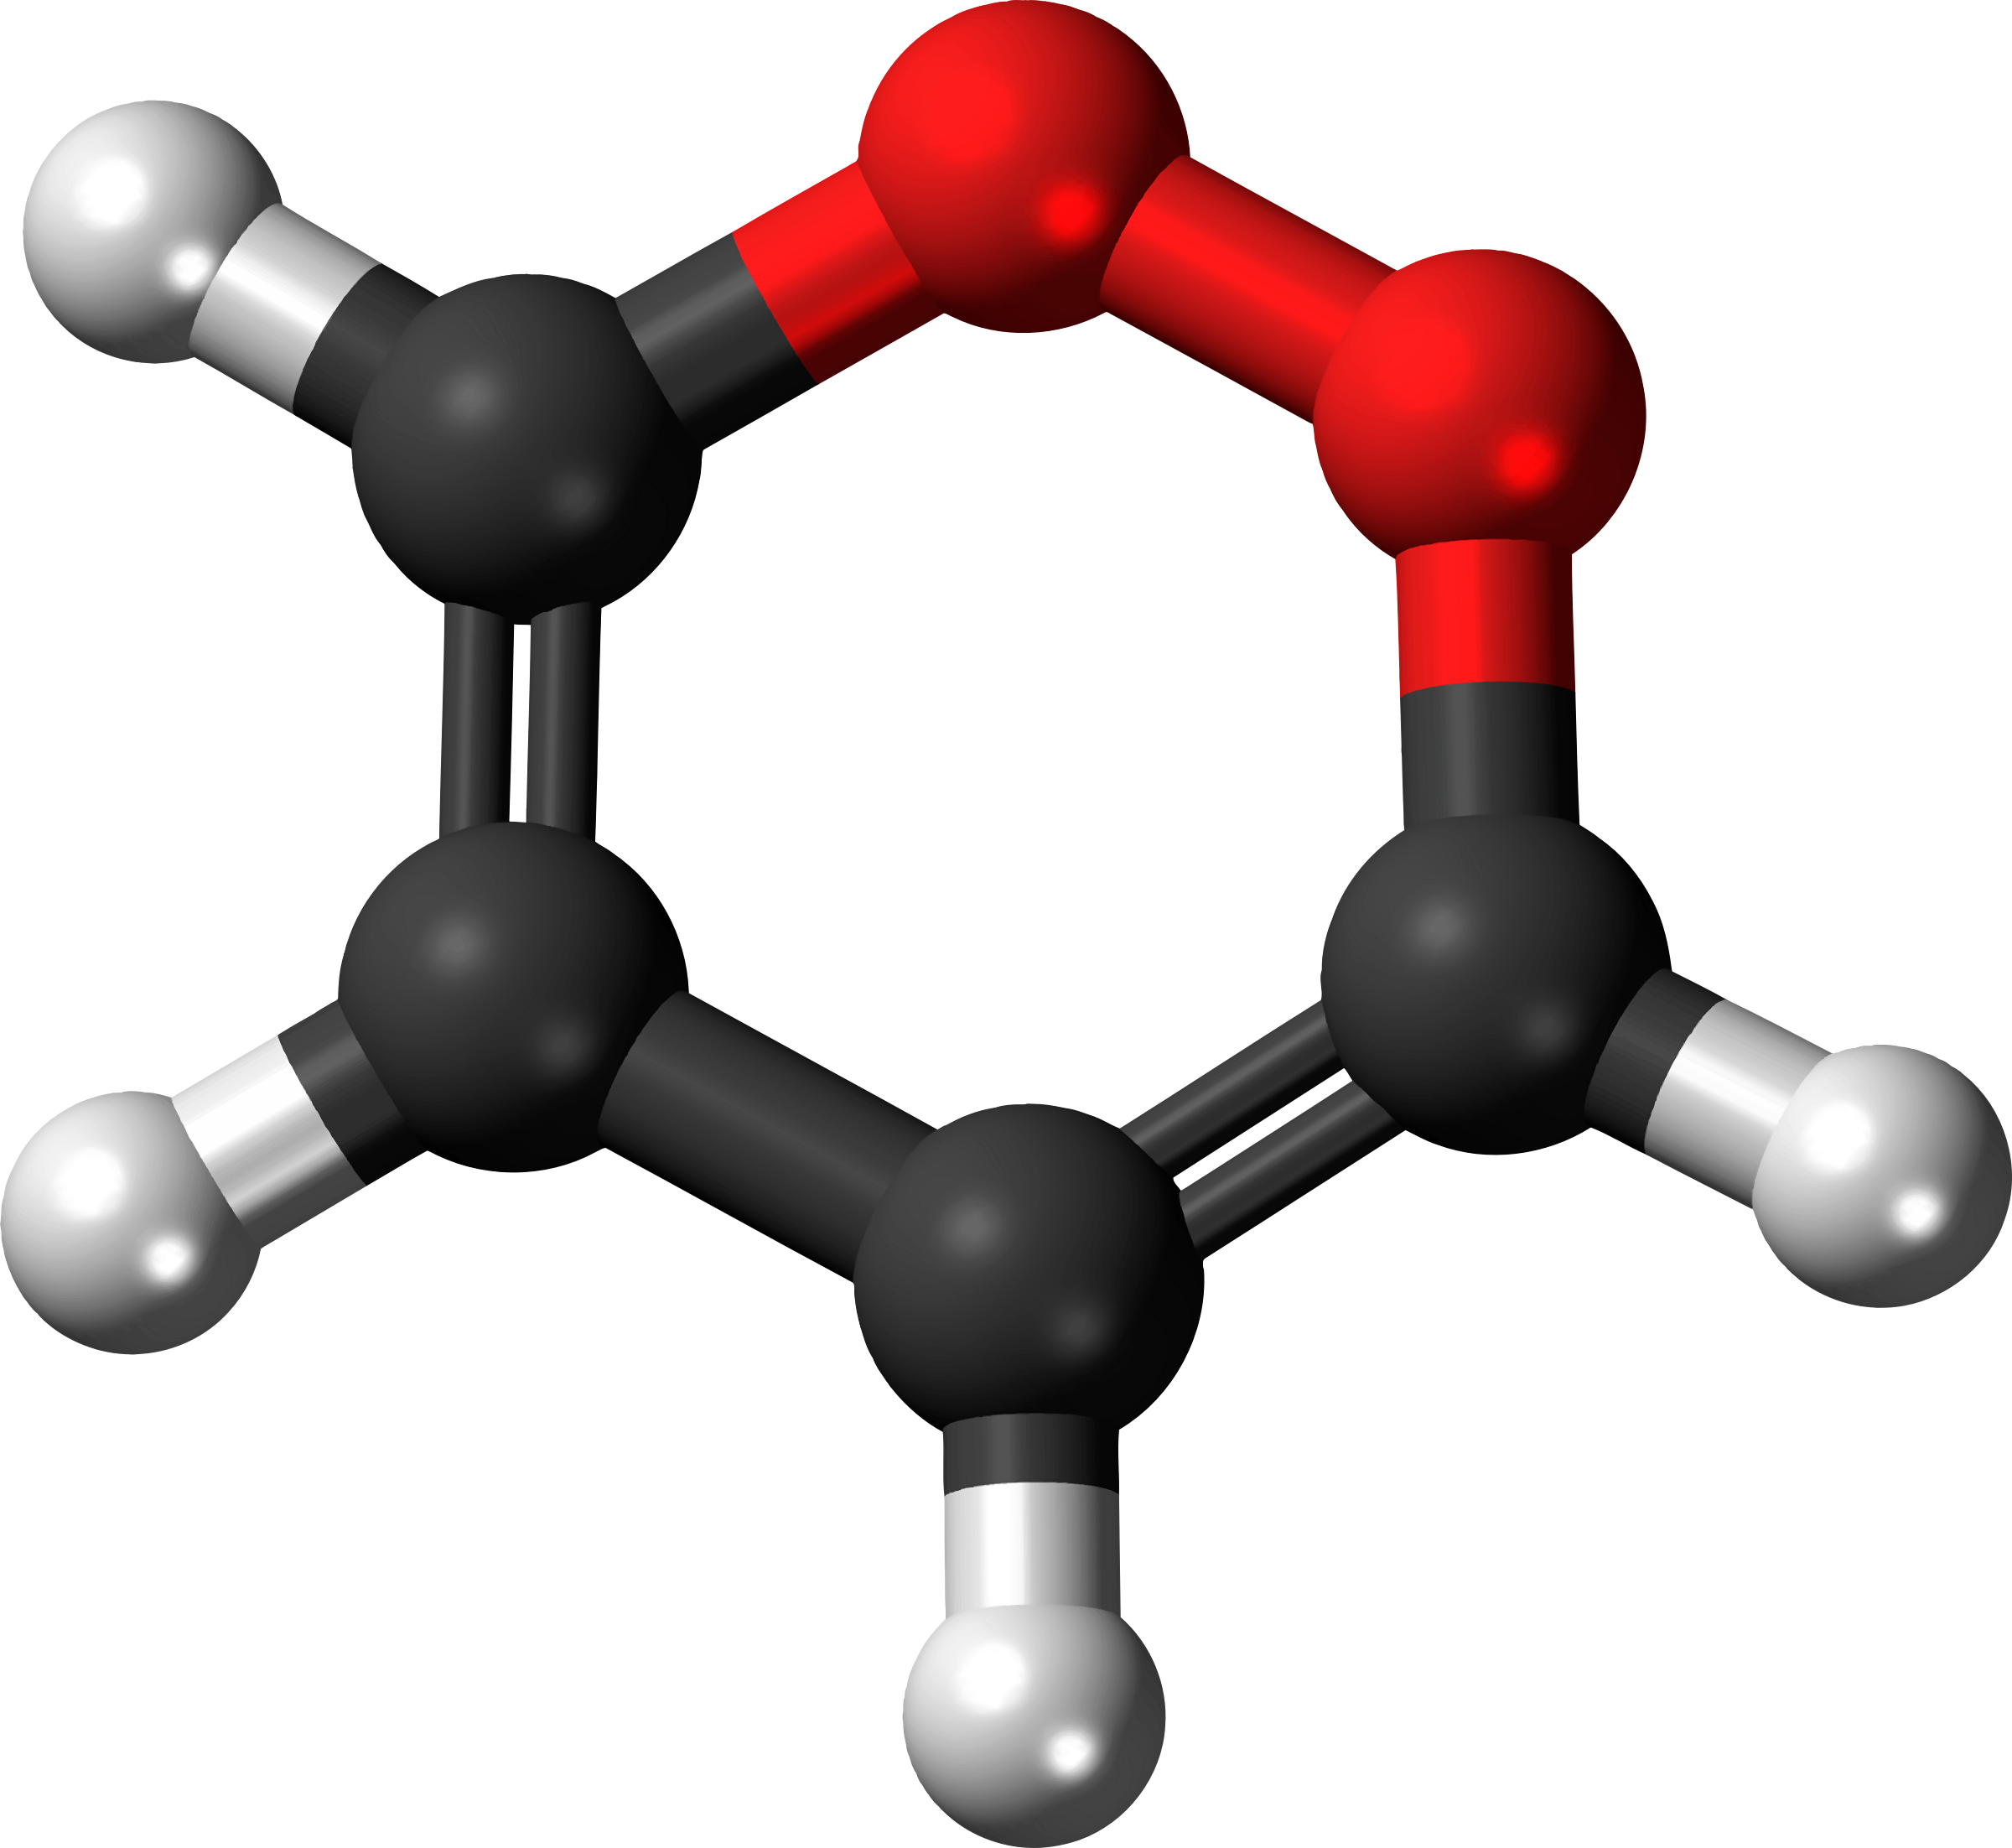 Famous (and infamous) molecules 38 - 1,2-dioxin by Firkin